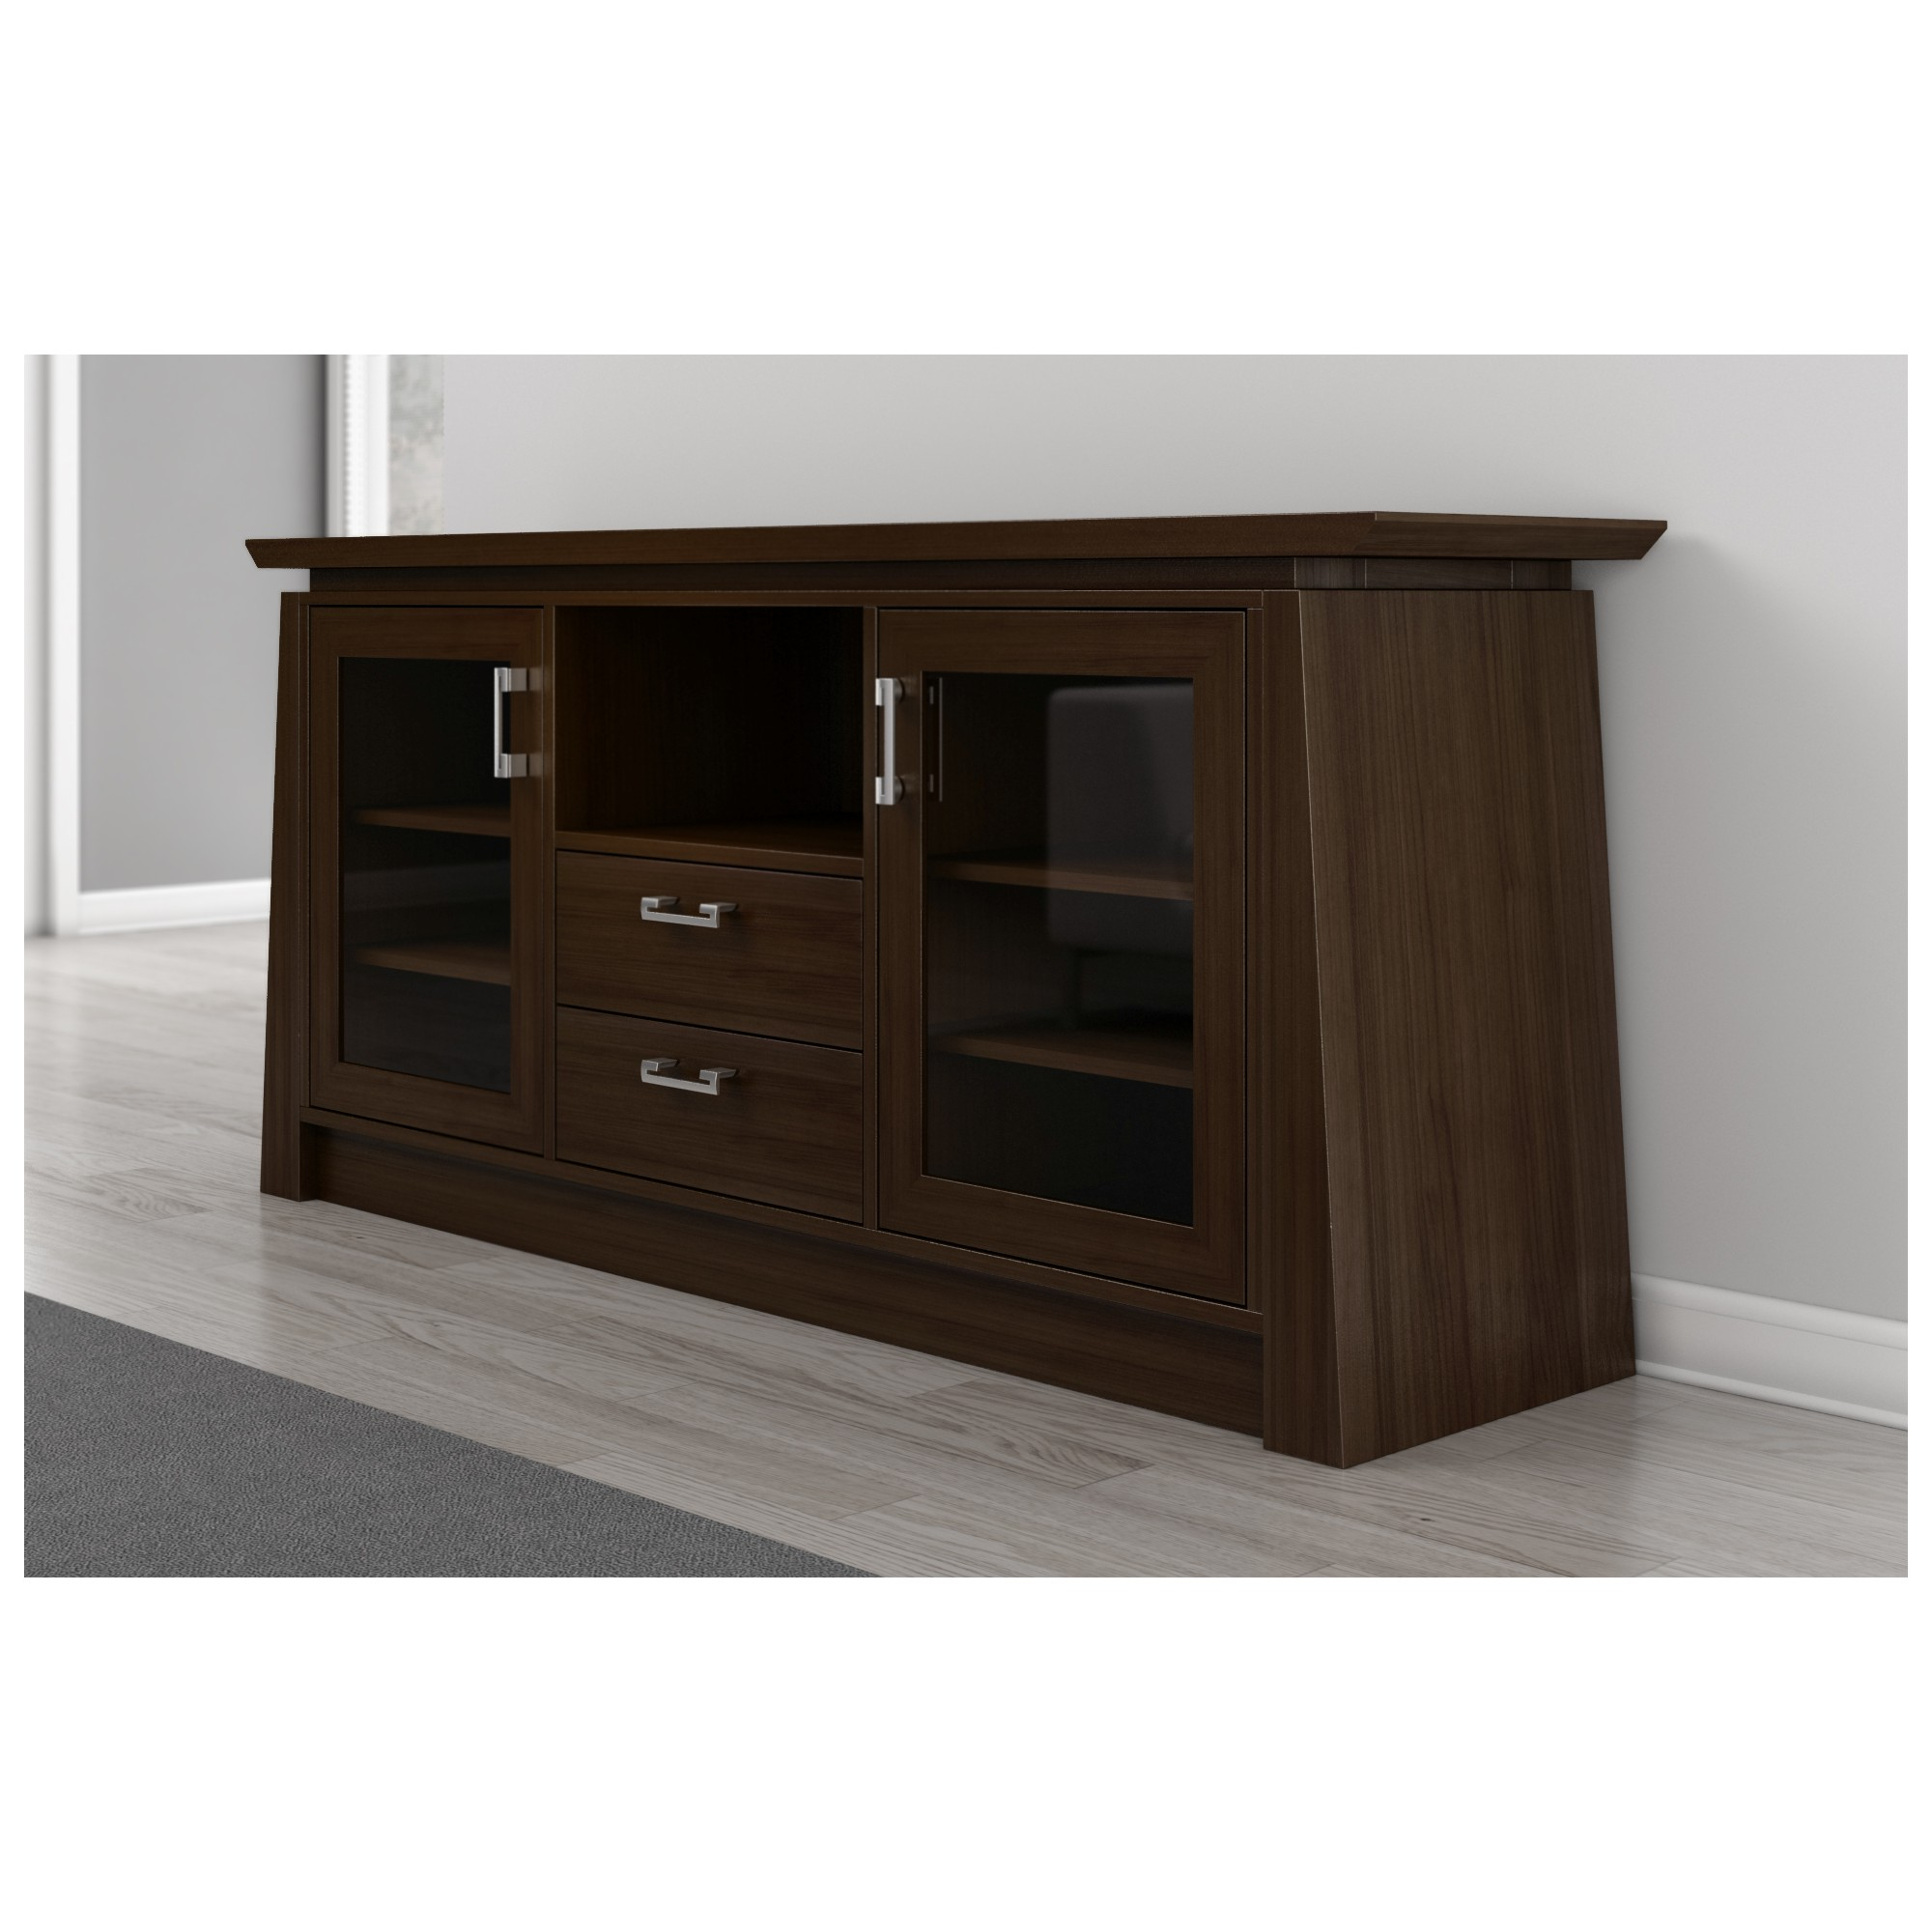 Splendent Larger Tv Stands Entertainment Centers In Elroy Tv Stand Pertaining To Popular Asian Tv Cabinets (View 2 of 20)